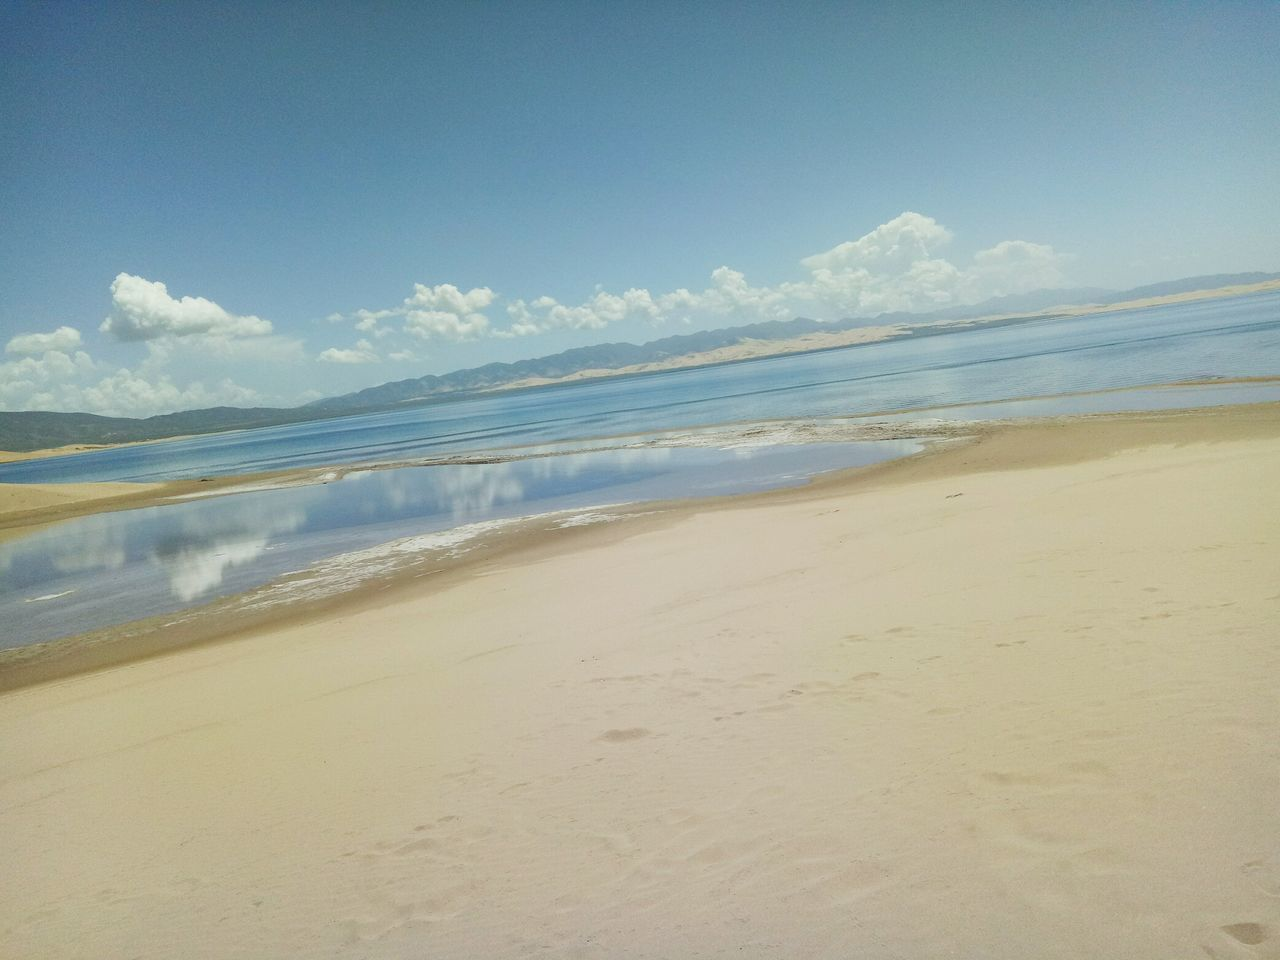 beach, sand, sea, nature, shore, sky, scenics, water, tranquility, beauty in nature, no people, day, horizon over water, outdoors, wave